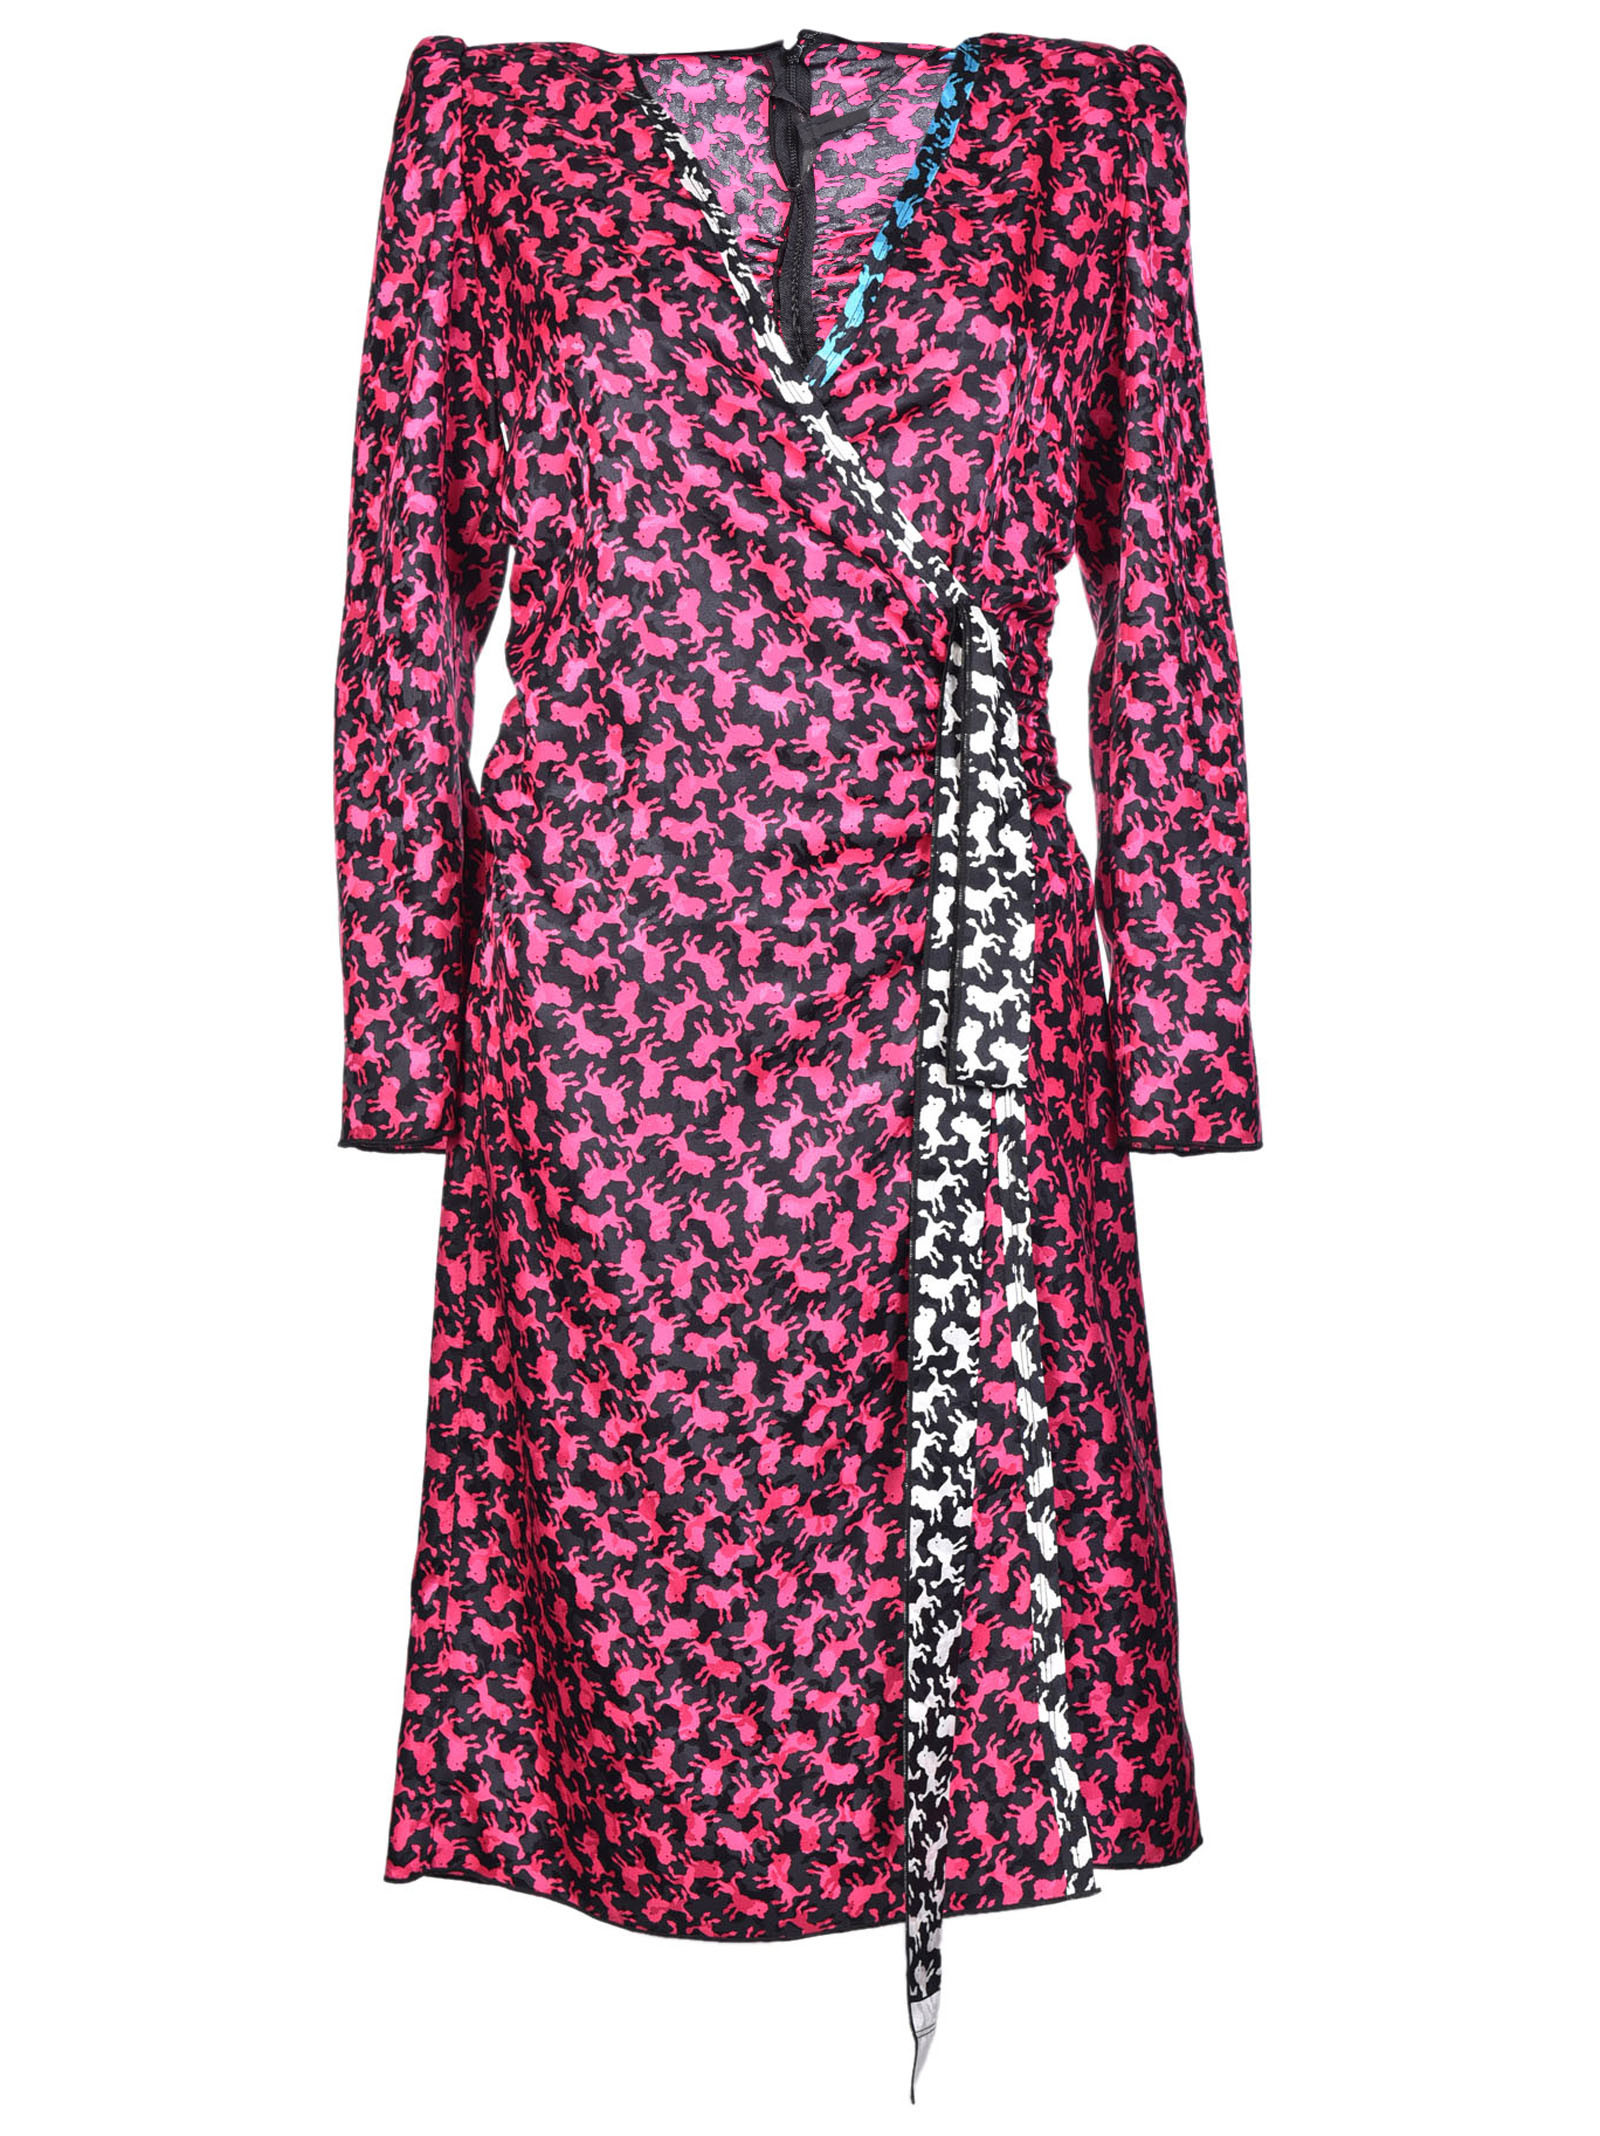 marc jacobs female marc jacobs ruched dress